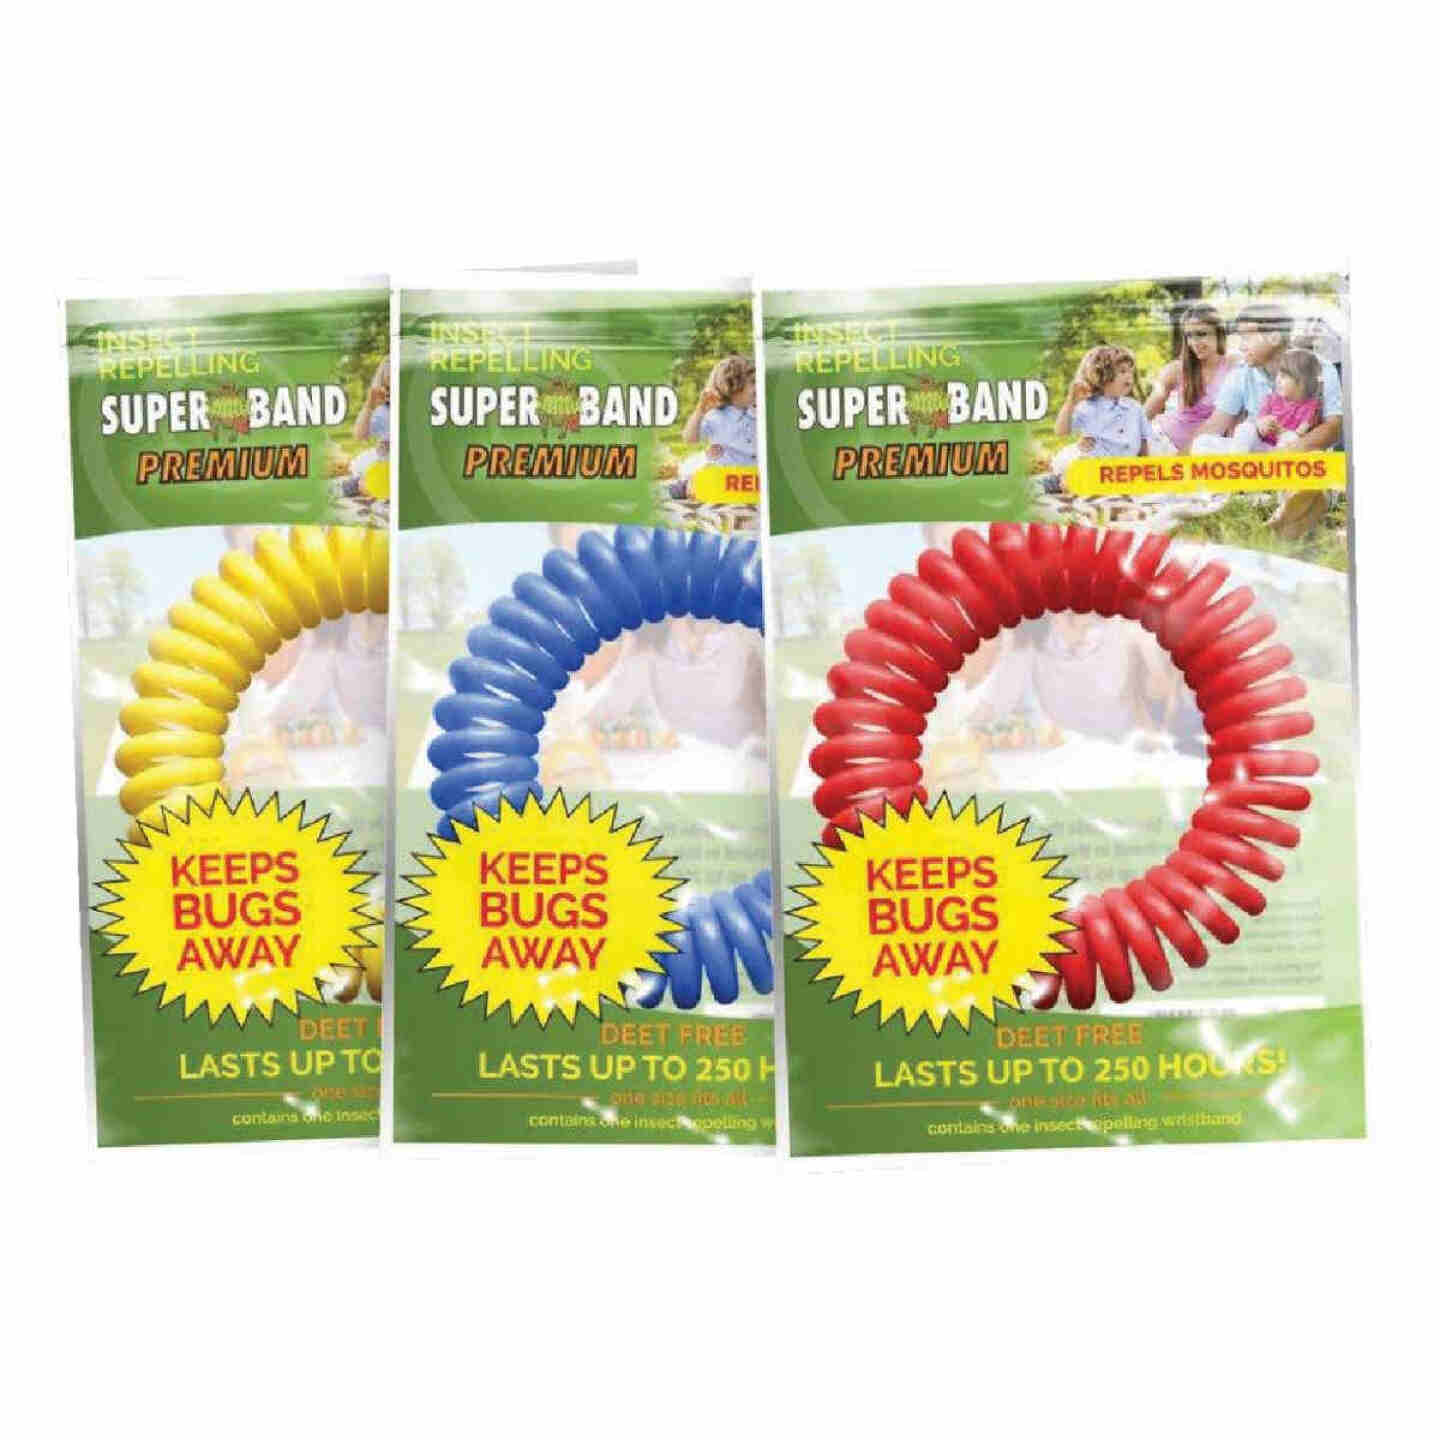 Super Band 250 Hr. Assorted Color Insect Repelling Wristband Image 1